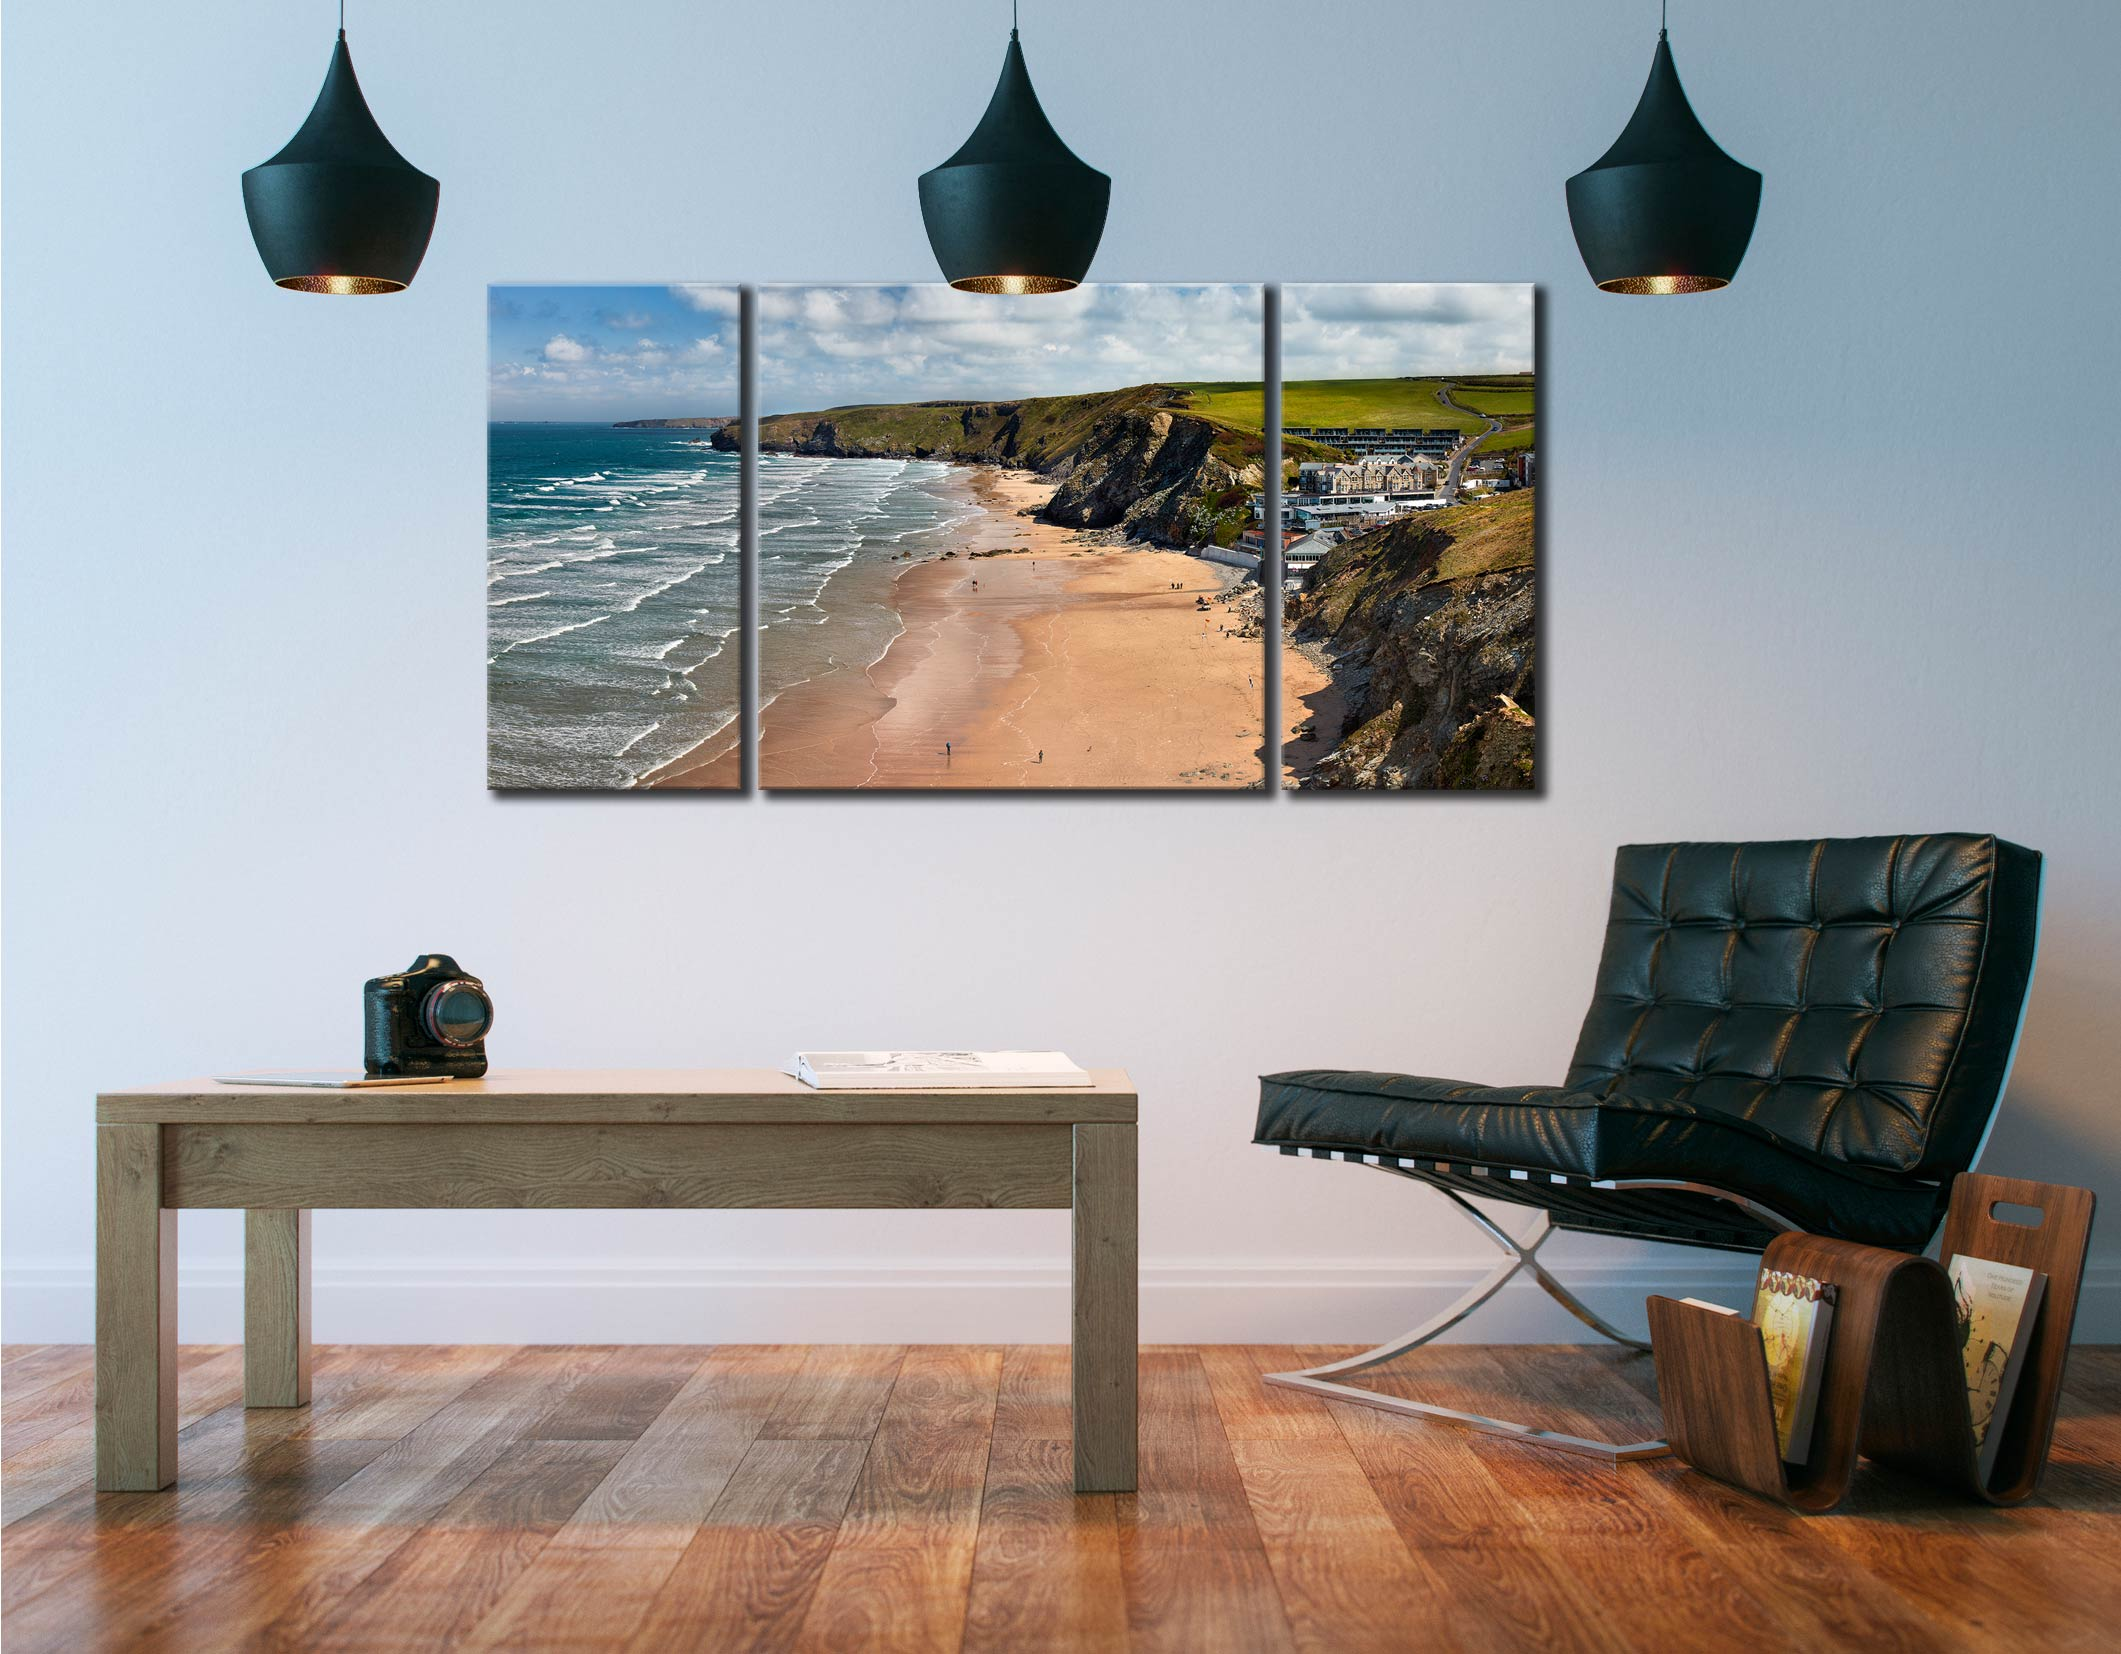 Watergate Bay Beach  - 3 Panel Wide Centre Canvas on Wall